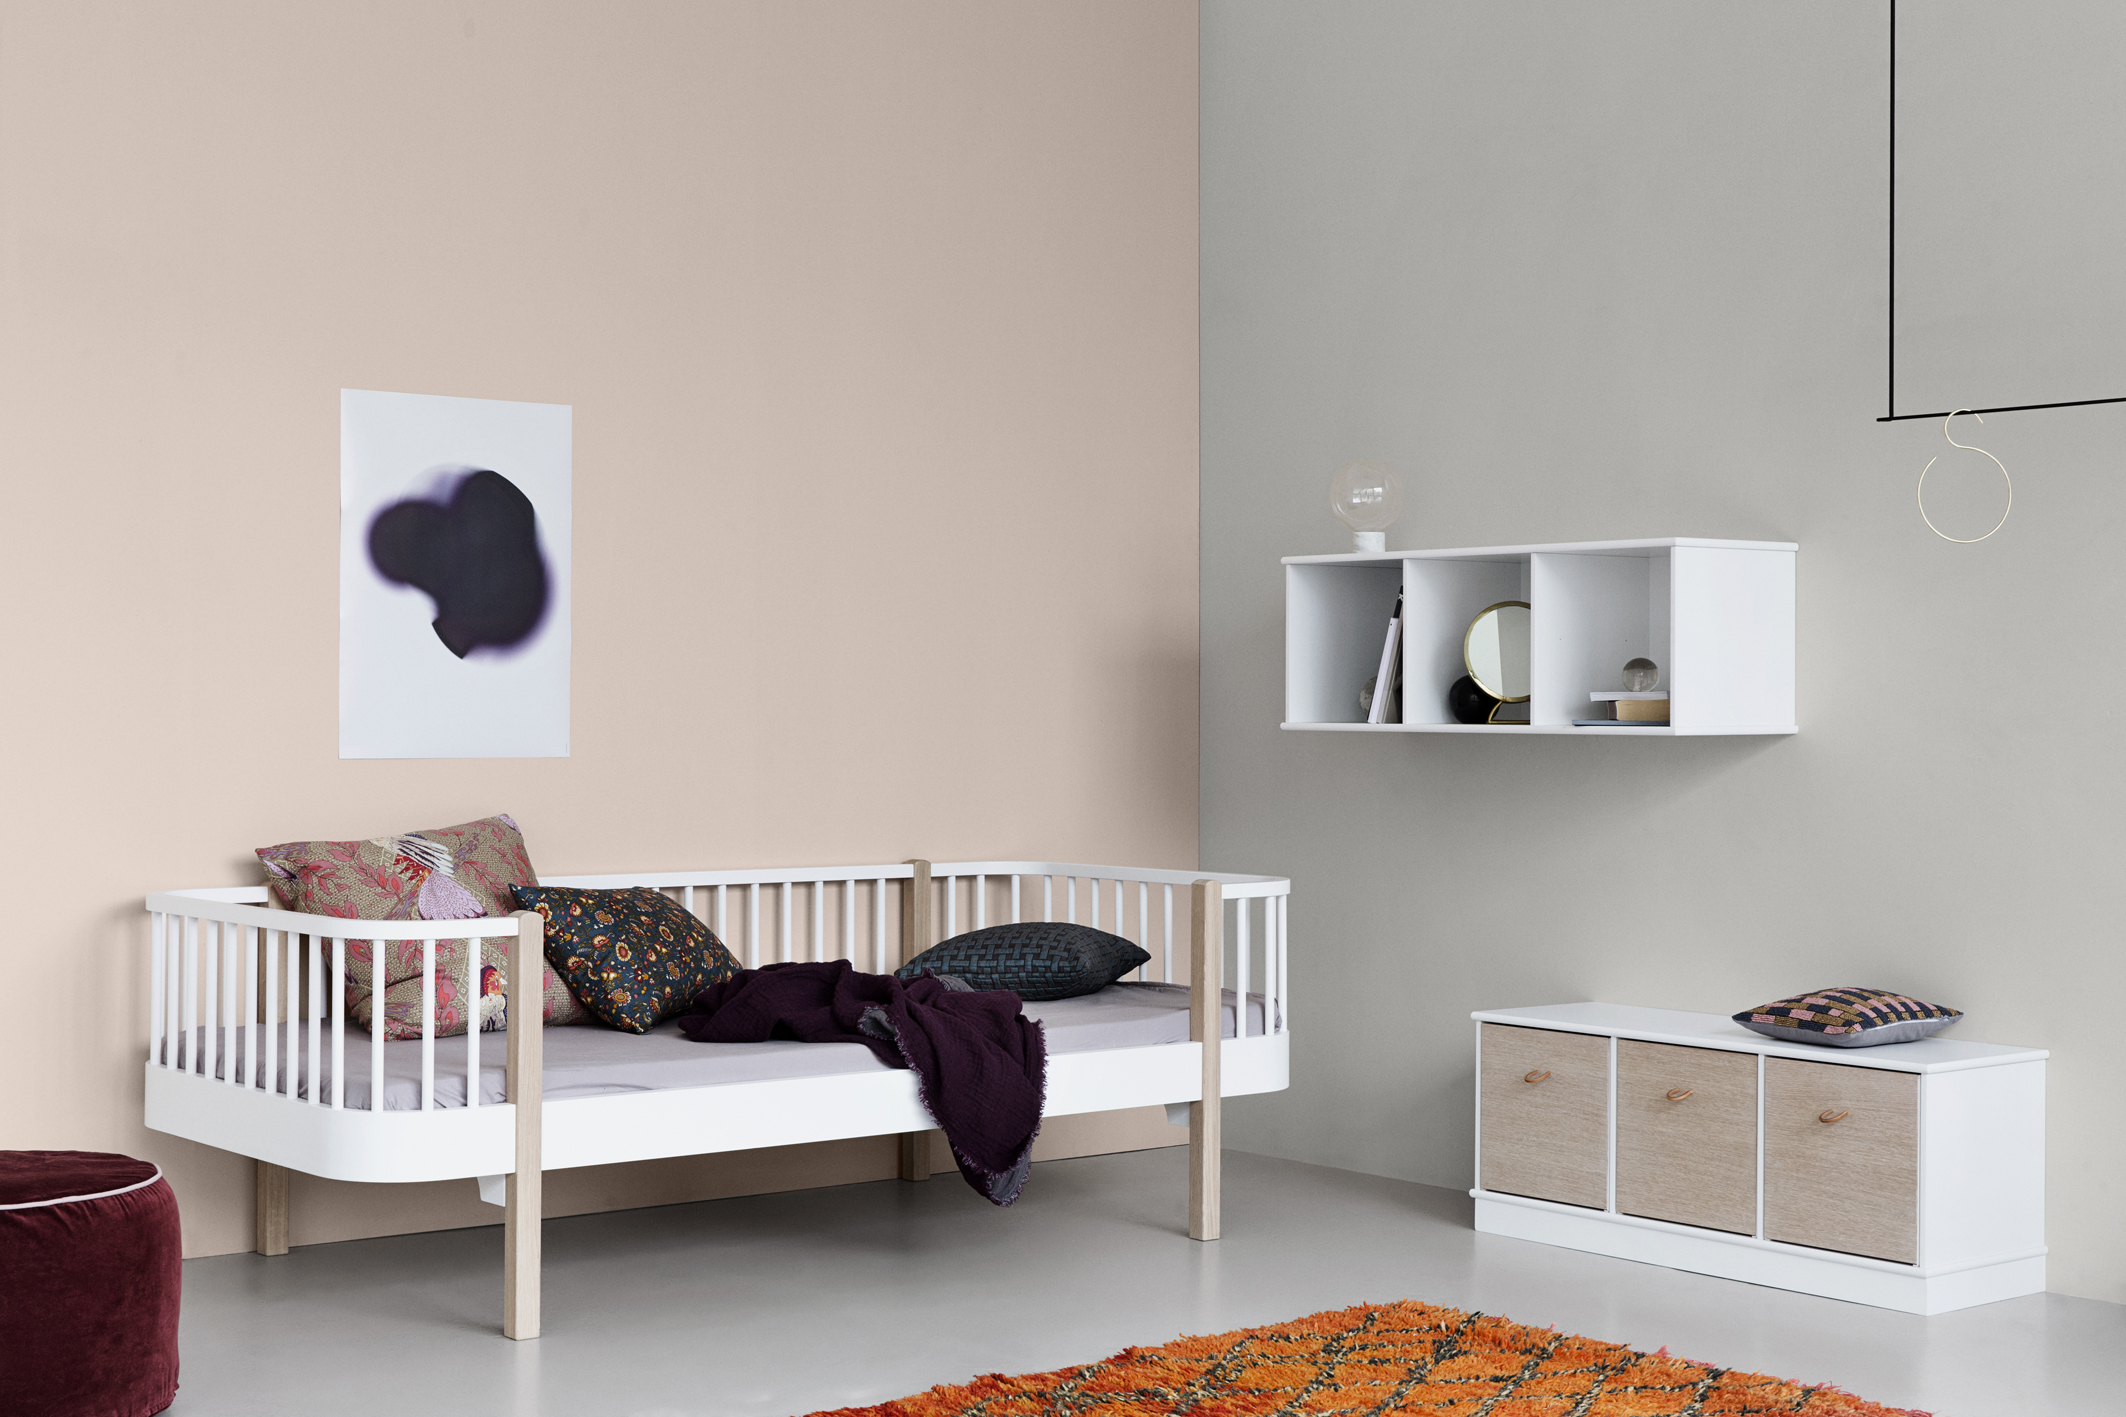 mood_041405_Wood_day_bed_oak_041324_041335_Wood_shelving_units1